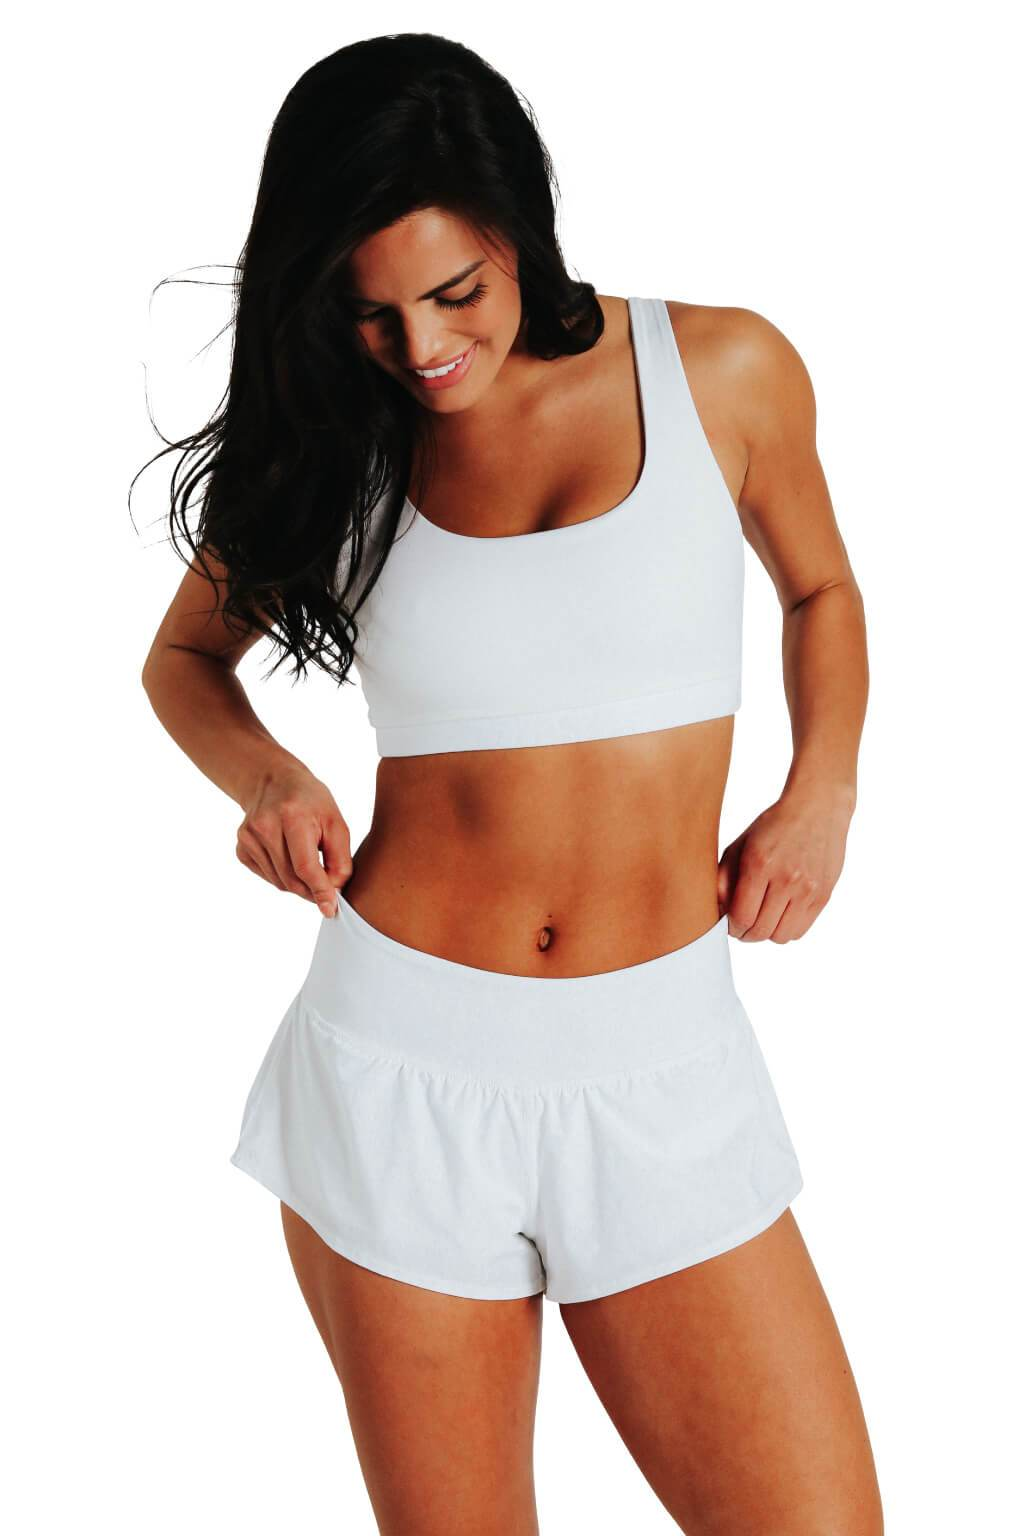 Yoga Democracy women's Eco-friendly activewear Flow Shorts in White color made from post consumer recycled plastic bottles with 3 inch inseam and built-in panty liner. Great running, jogging workout shorts.